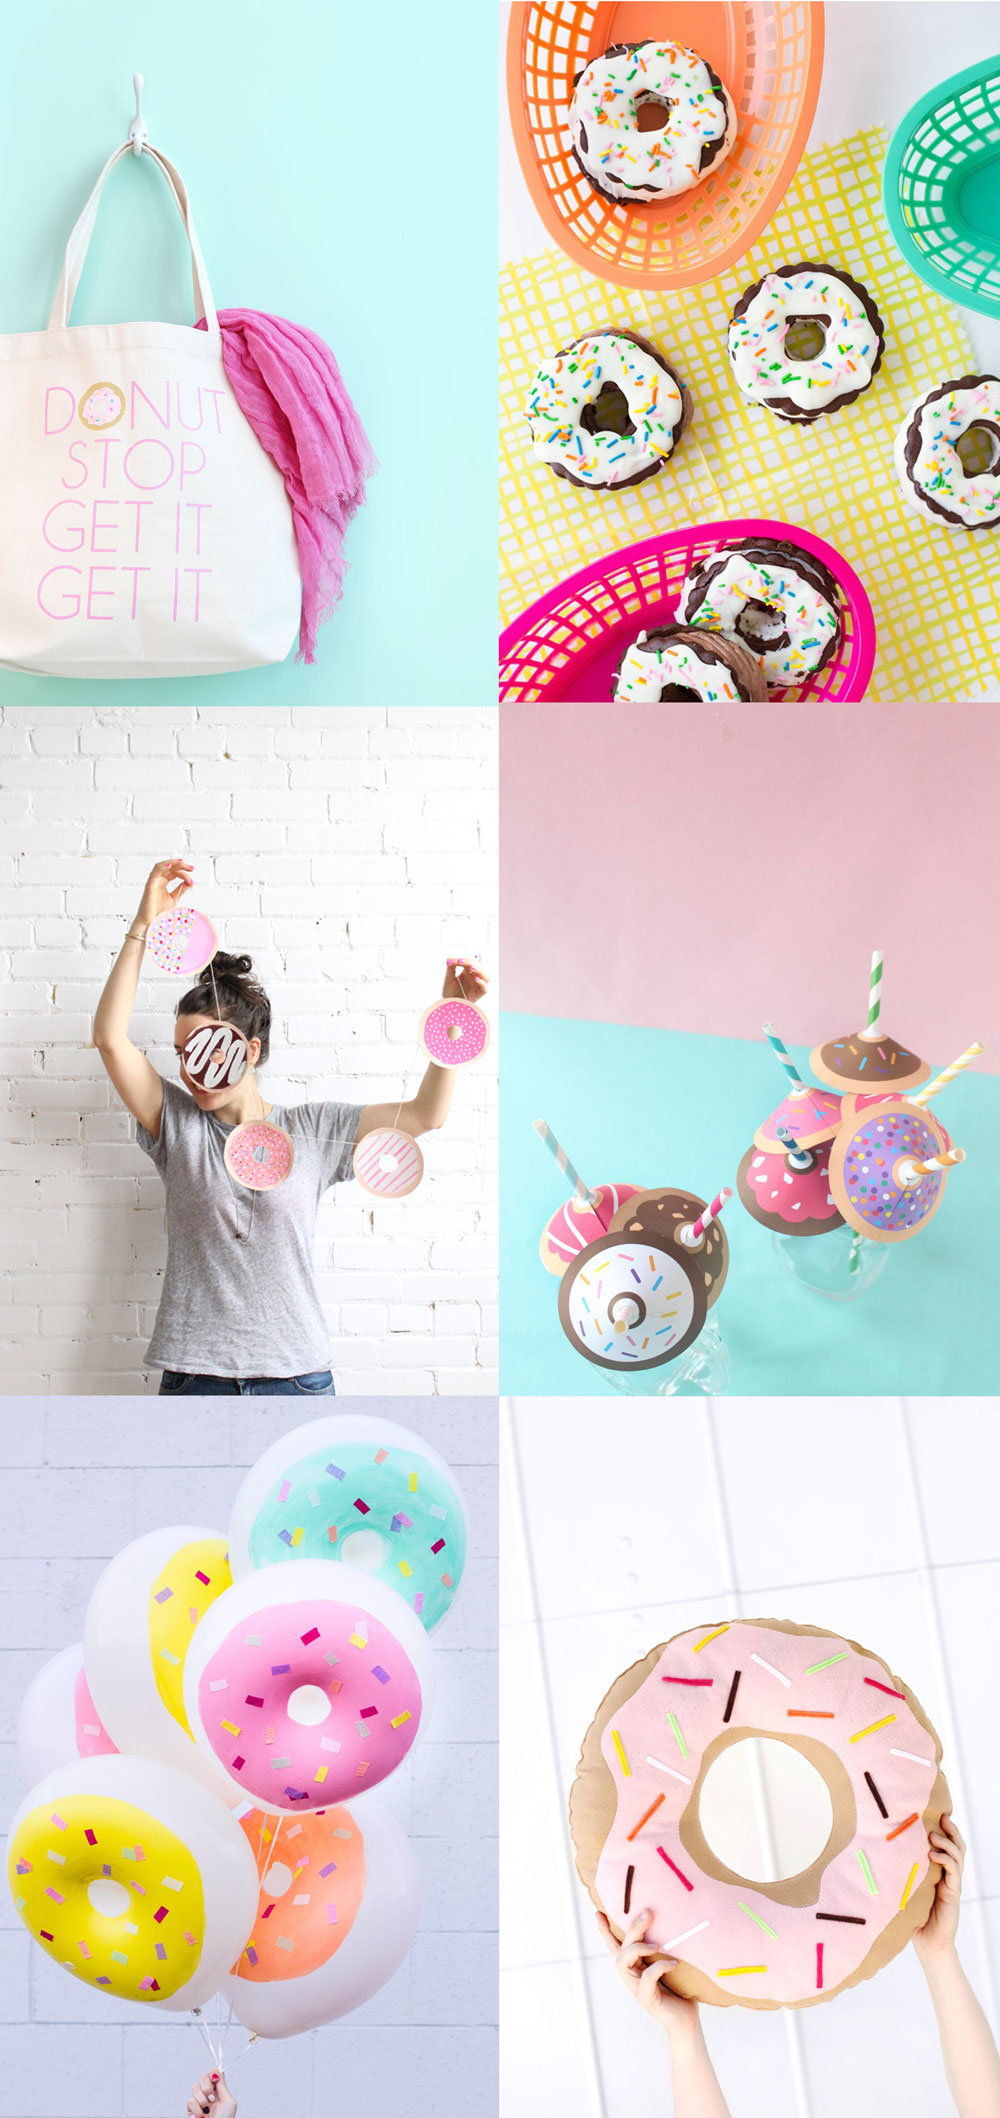 Donut-DIY-ideas